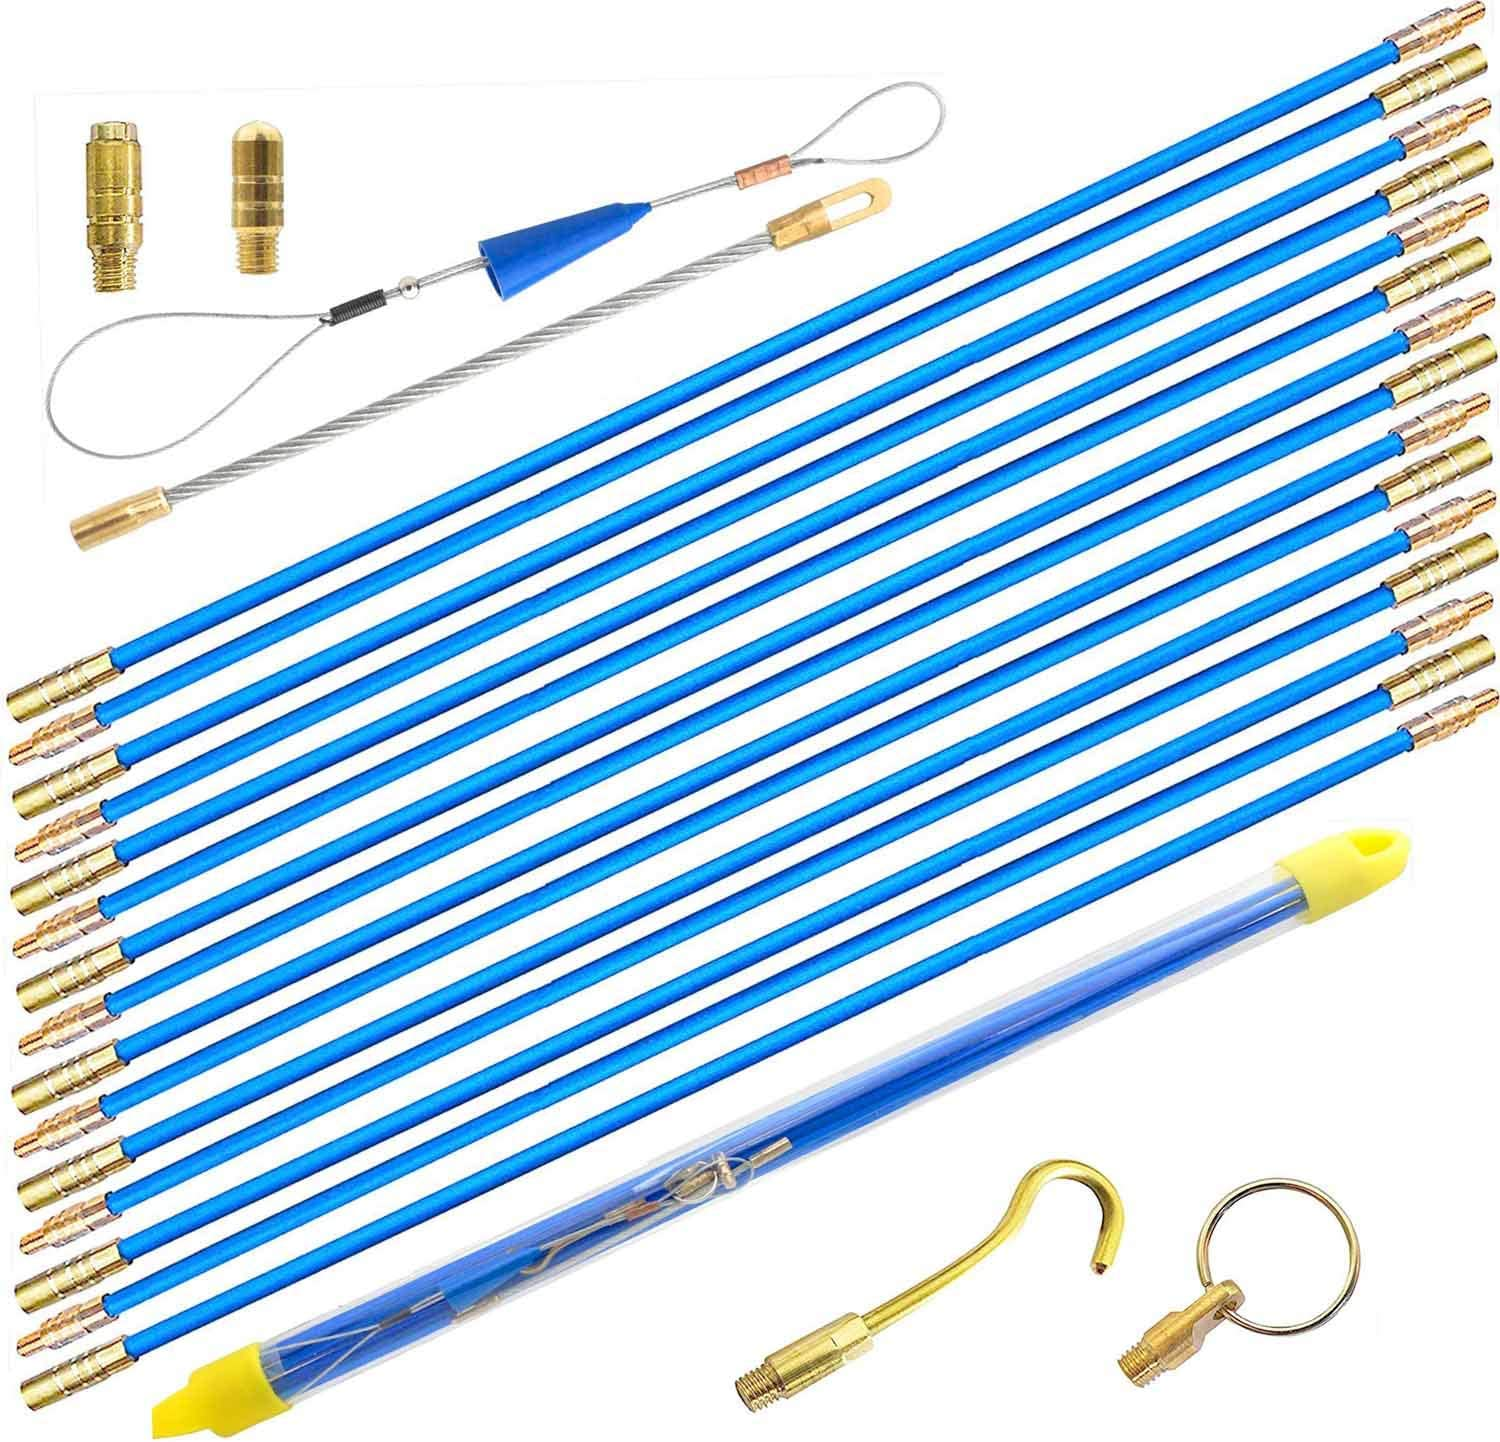 33/' Fiberglass Fish Tape Cable Rods By For Coaxial Wall Wiring Fishing Sticks